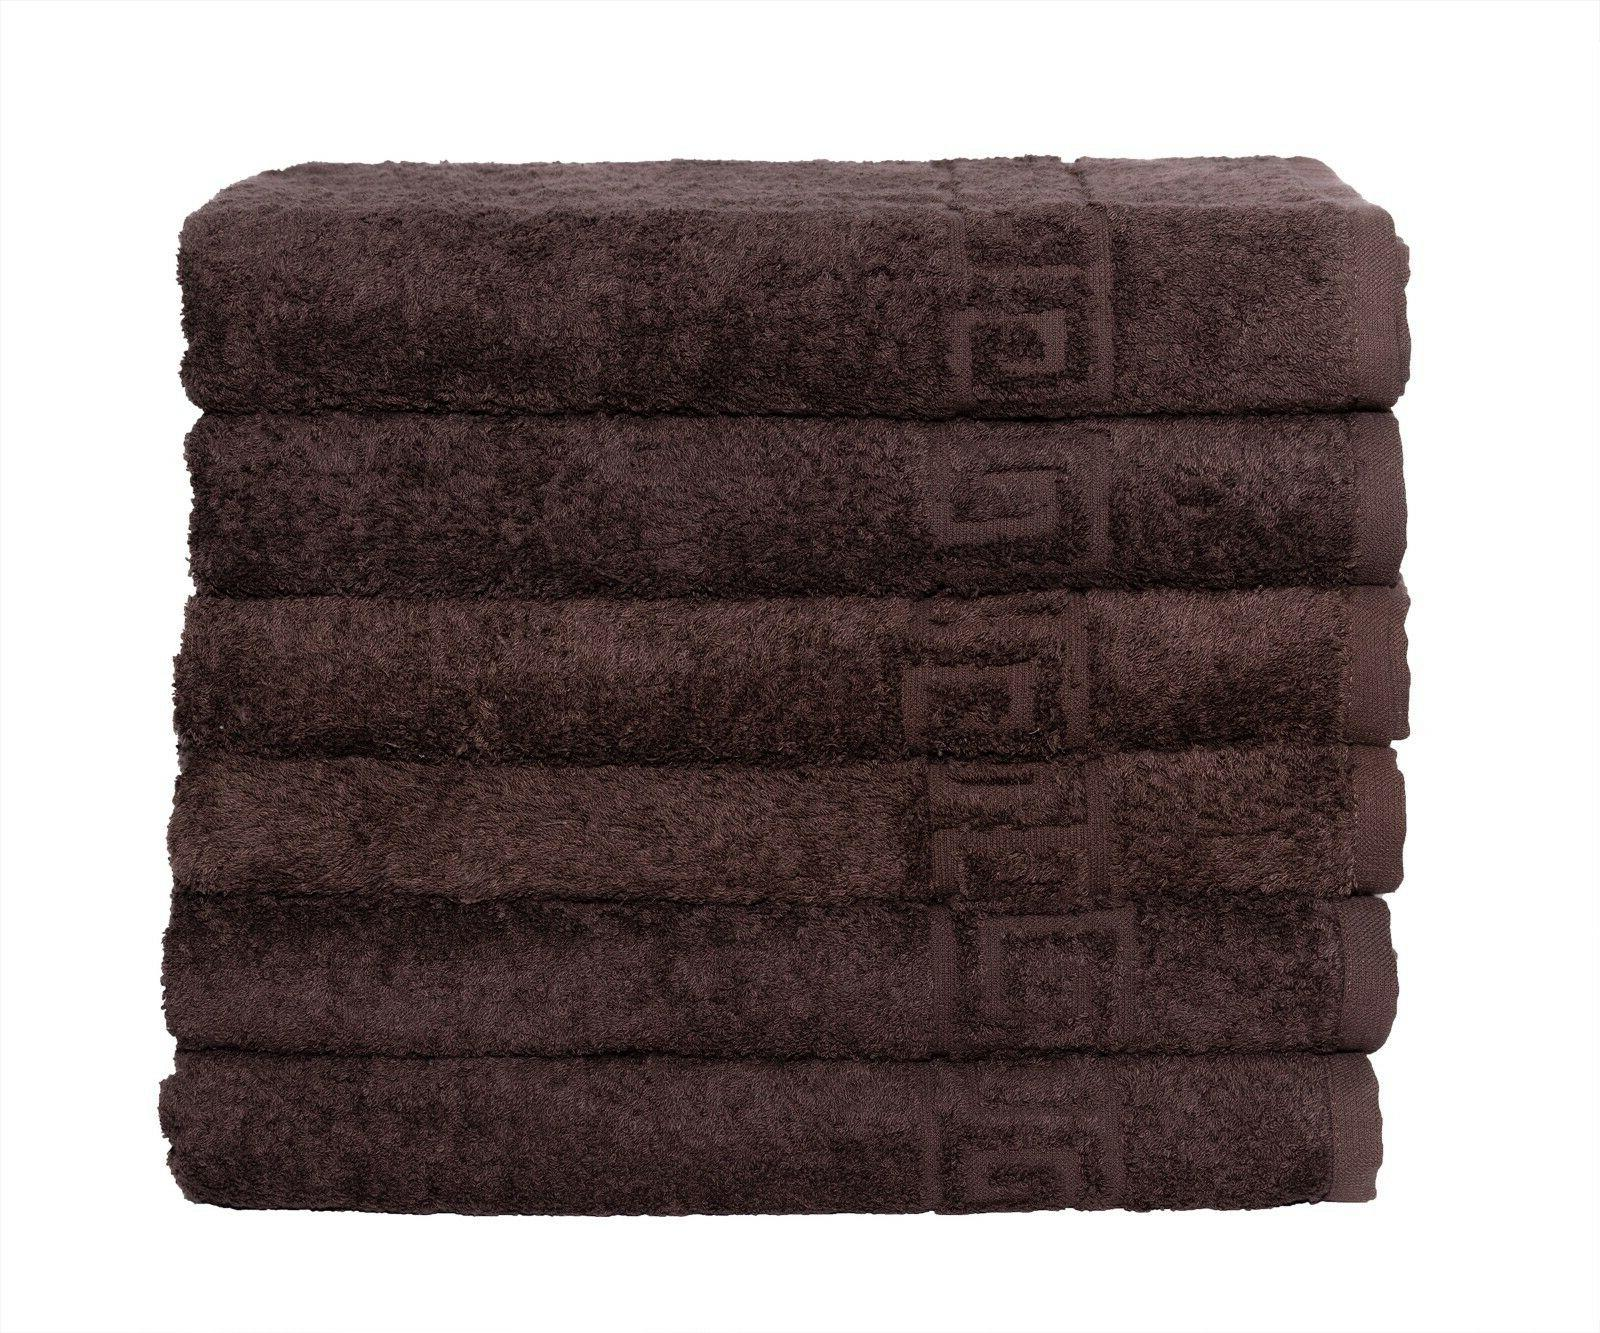 6 Pieces or 6 pcc Bath for - cotton Soft Luxury